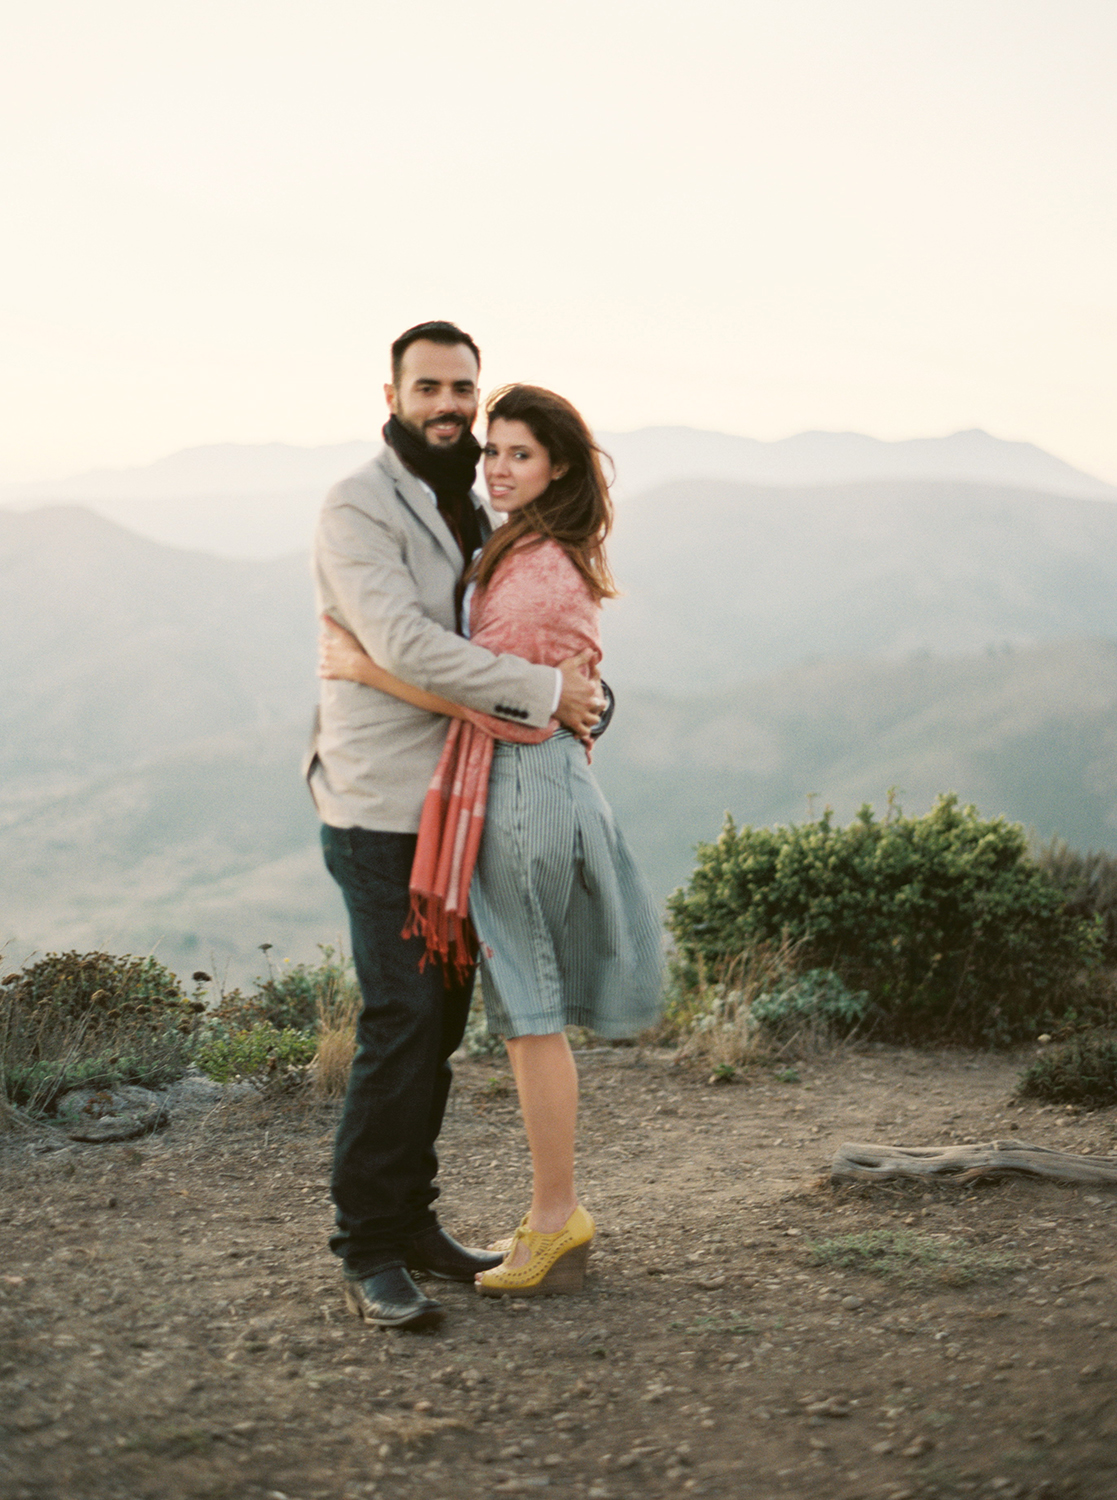 marin-headlands-engagement-session-luis-cecilia-10.html